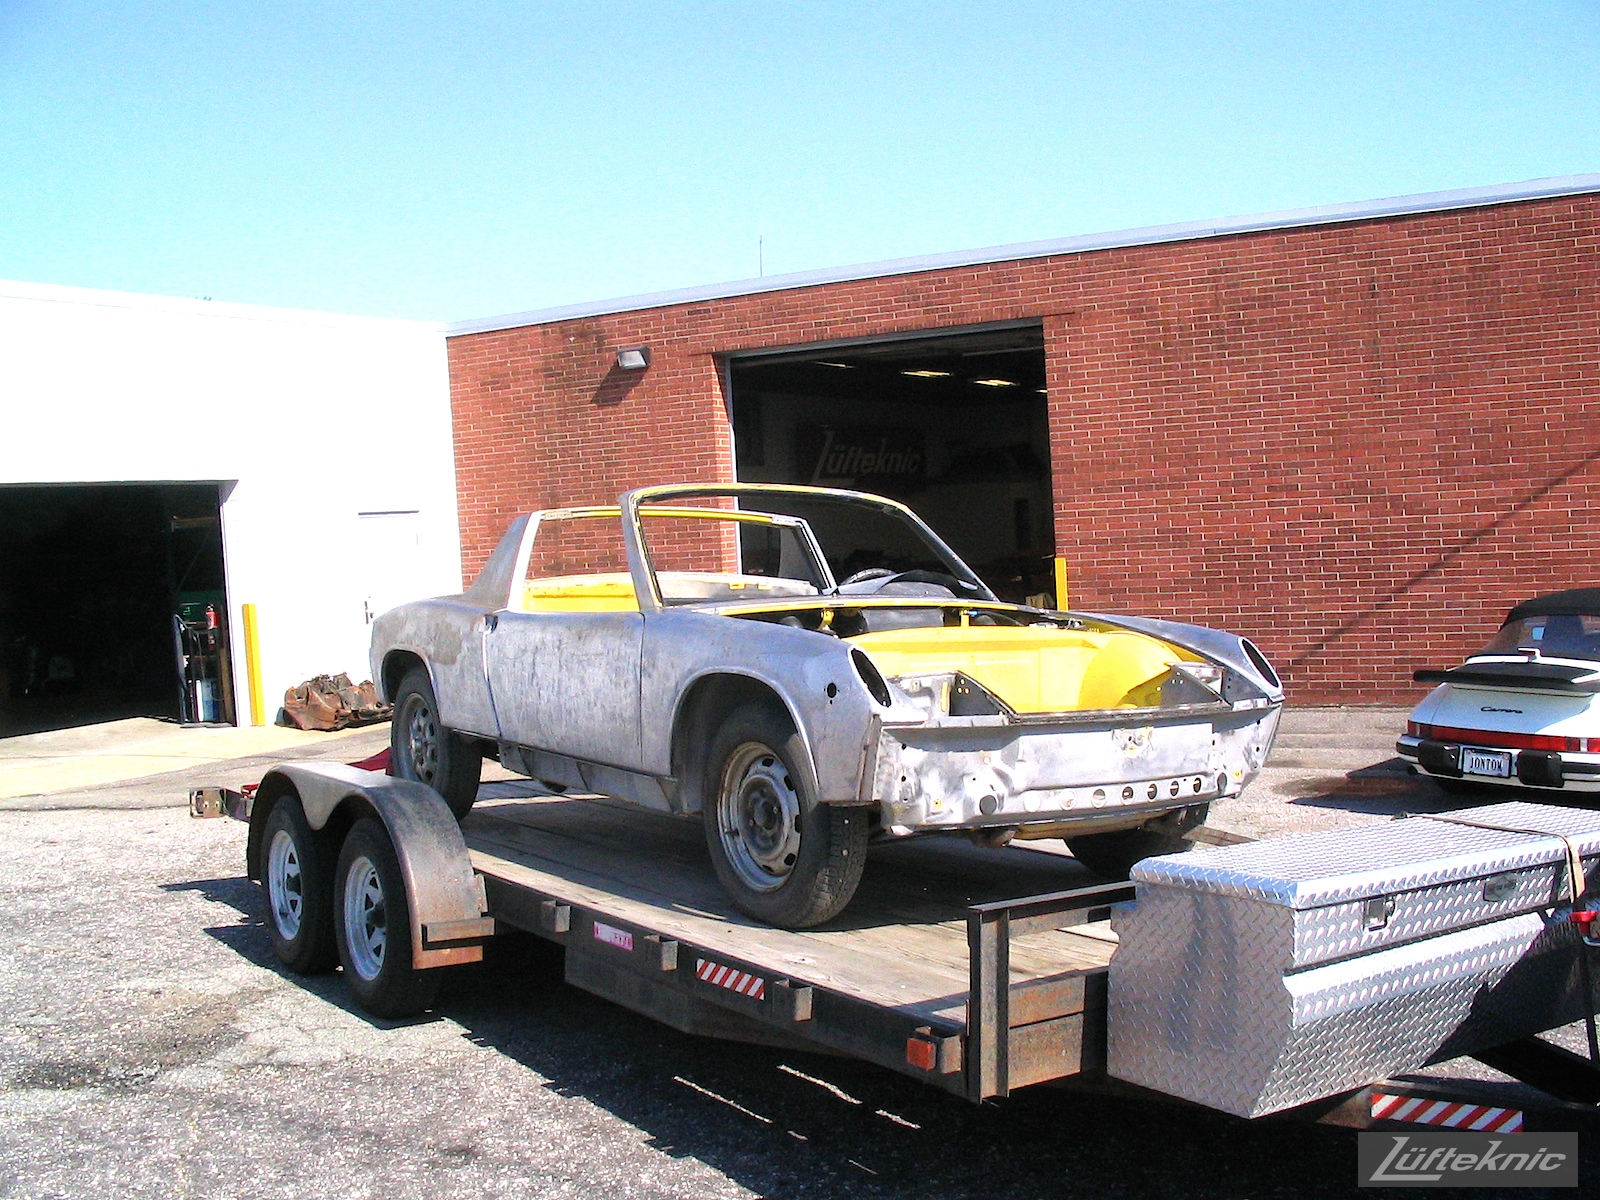 A stripped down yellow Porsche 914 shown mid-restoration on a trailer in the parking lot of Lufteknic.